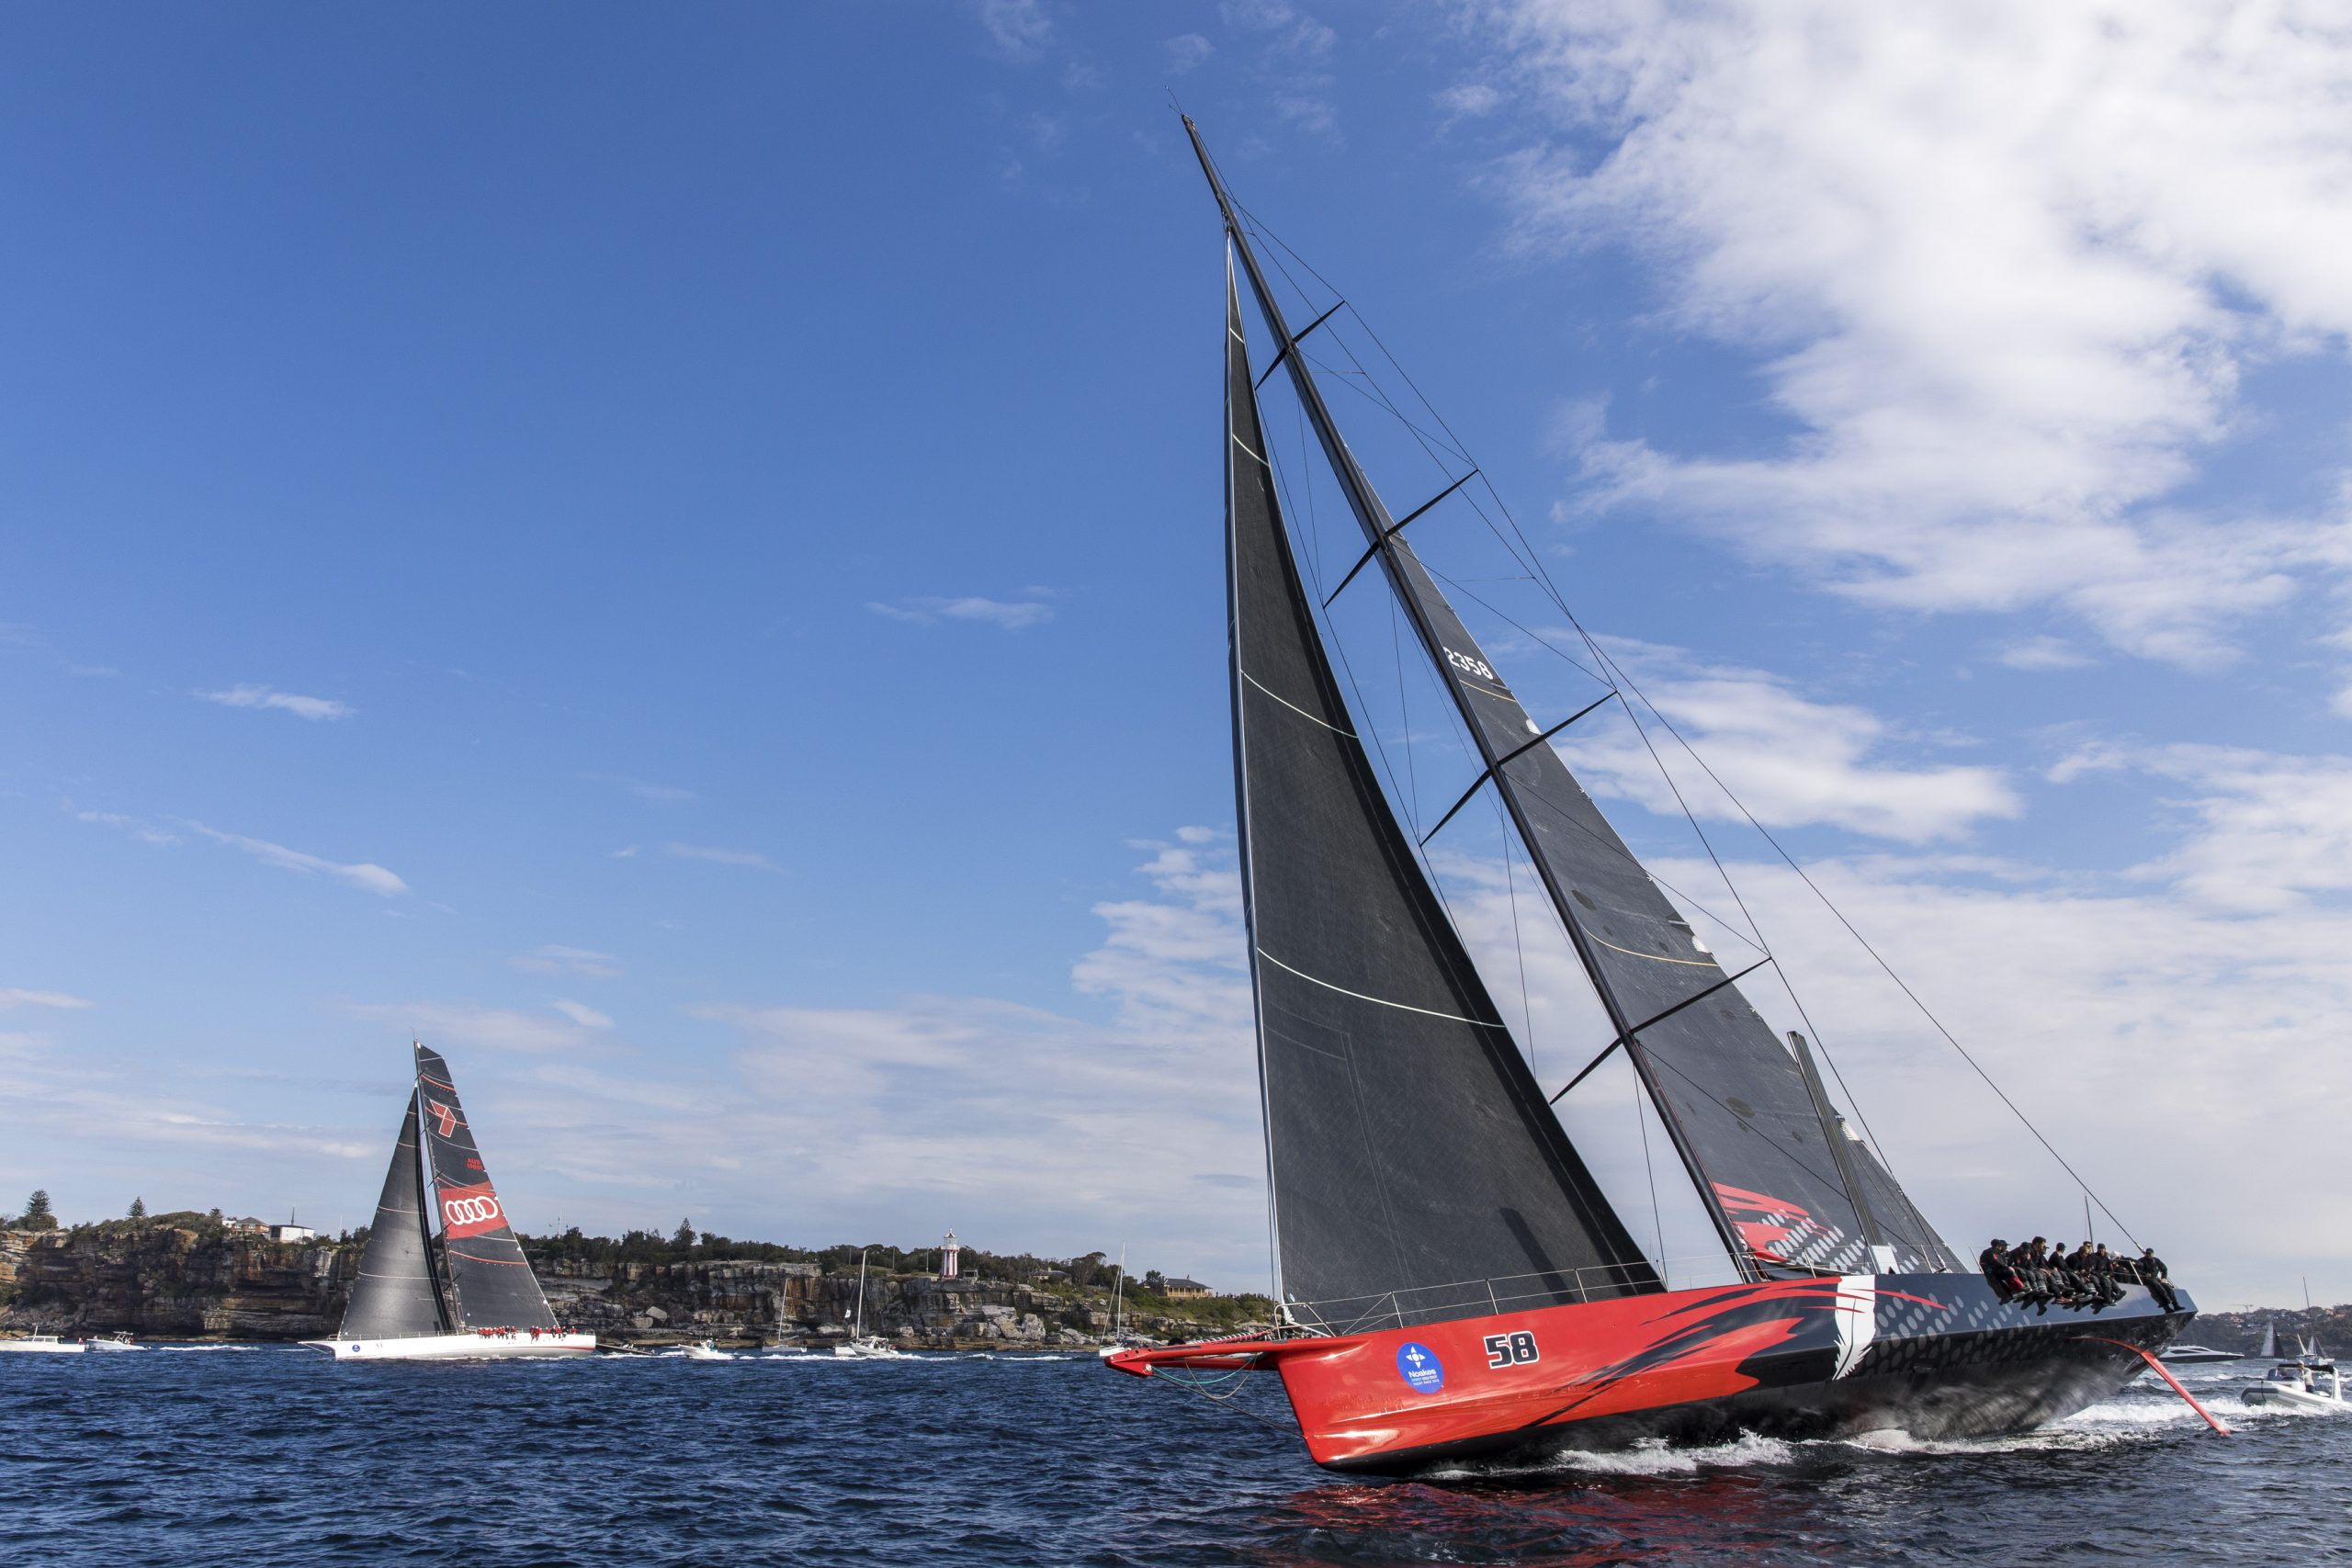 Comanche leads Wild Oats XI at the start of the Sydney Gold Coast race - Andrea Francolini pic